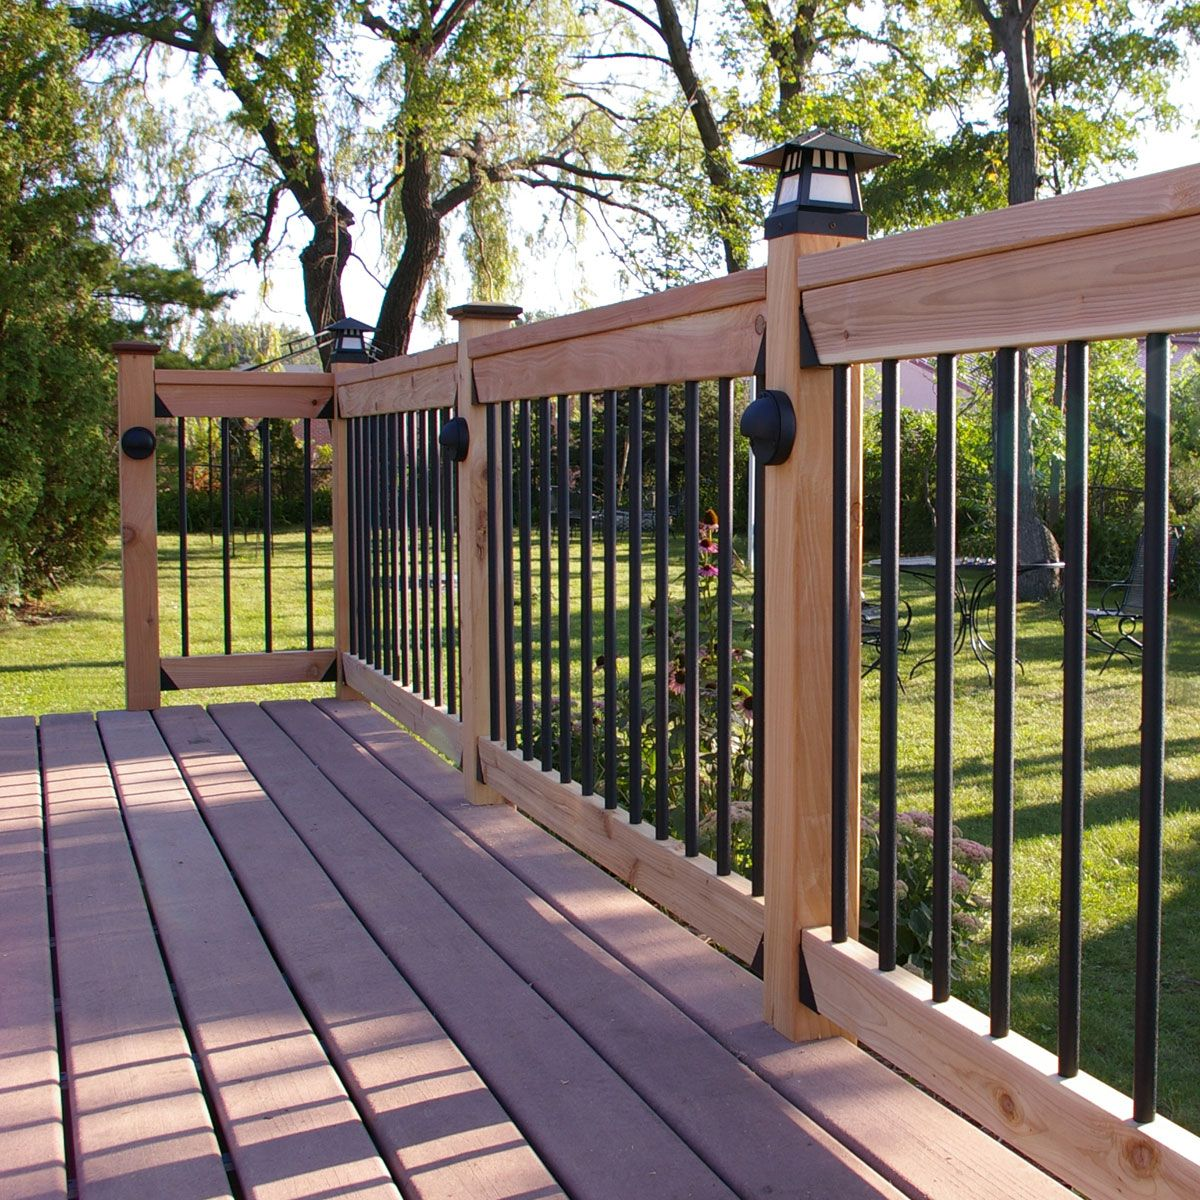 1000+ images about Deck Balusters on Pinterest   Decks, Baroque and Deck  railings